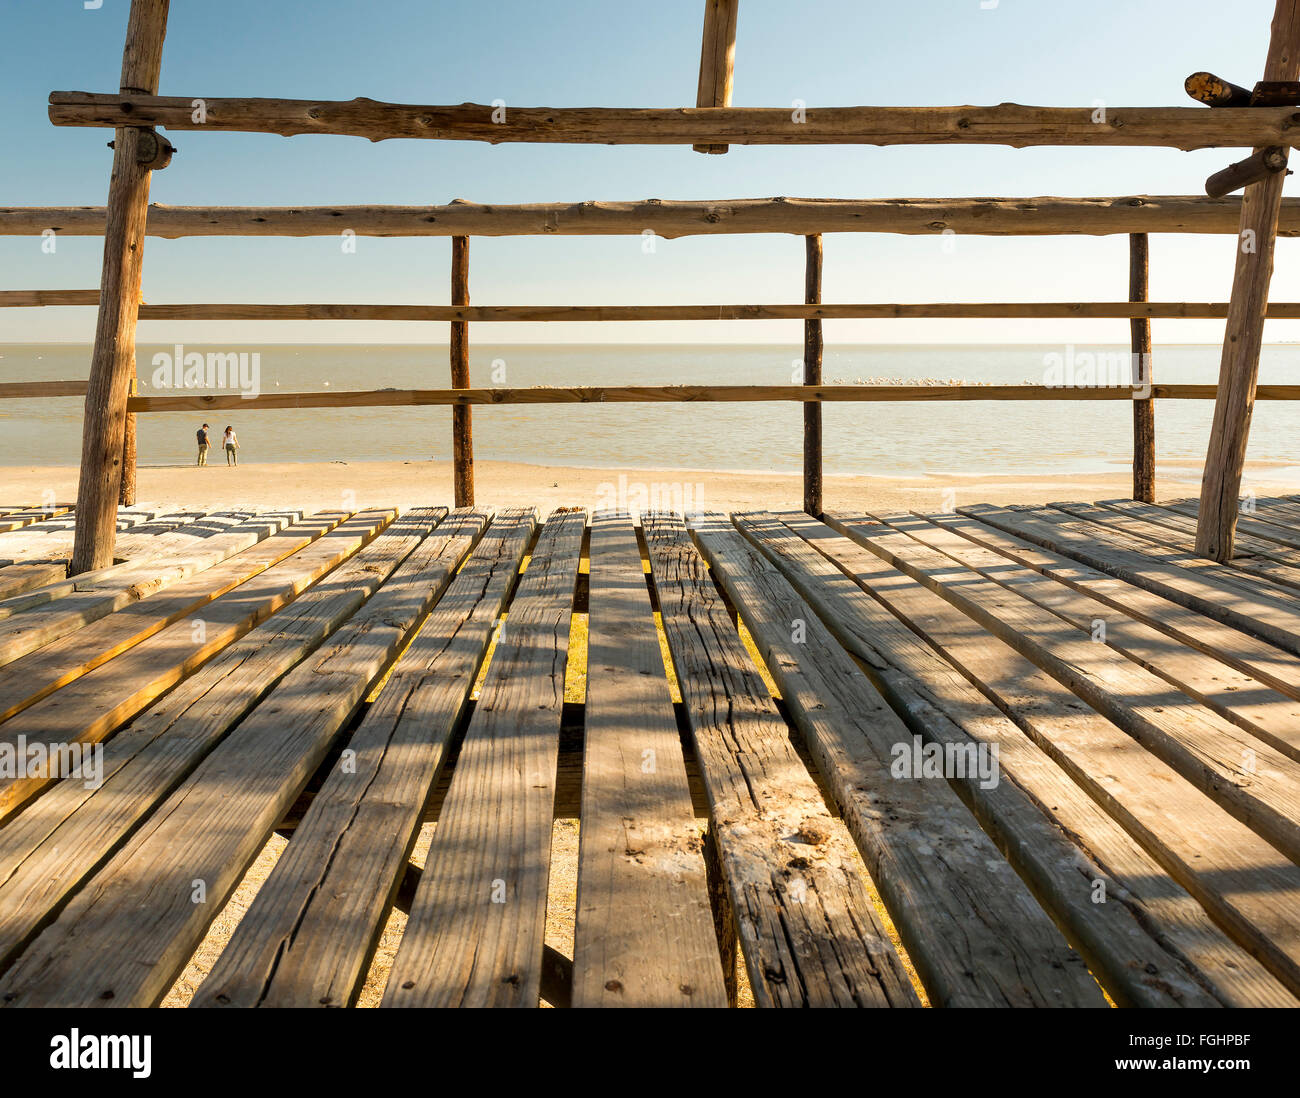 Wooden beach hut looks out over two tourists in the Makgadikgadi Pan in Botswana, Africa - Stock Image